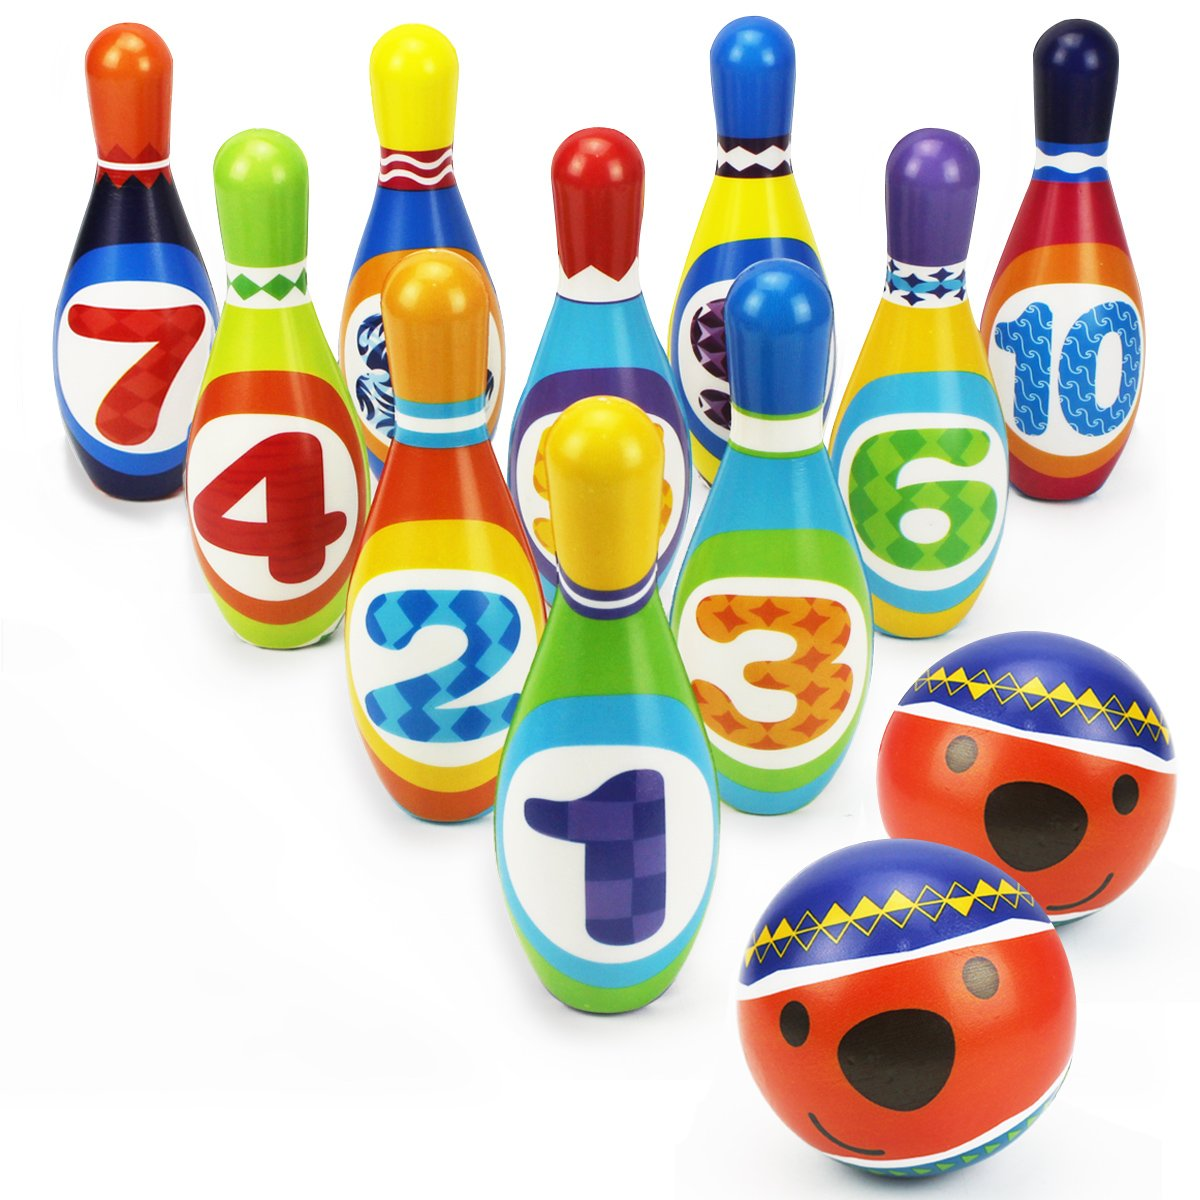 iPlay, iLearn Kids Bowling Play Set, 10 Pins and 2 Balls for 2, 3, 4, 5 Year Olds Children, Toddlers, Boys, Girls